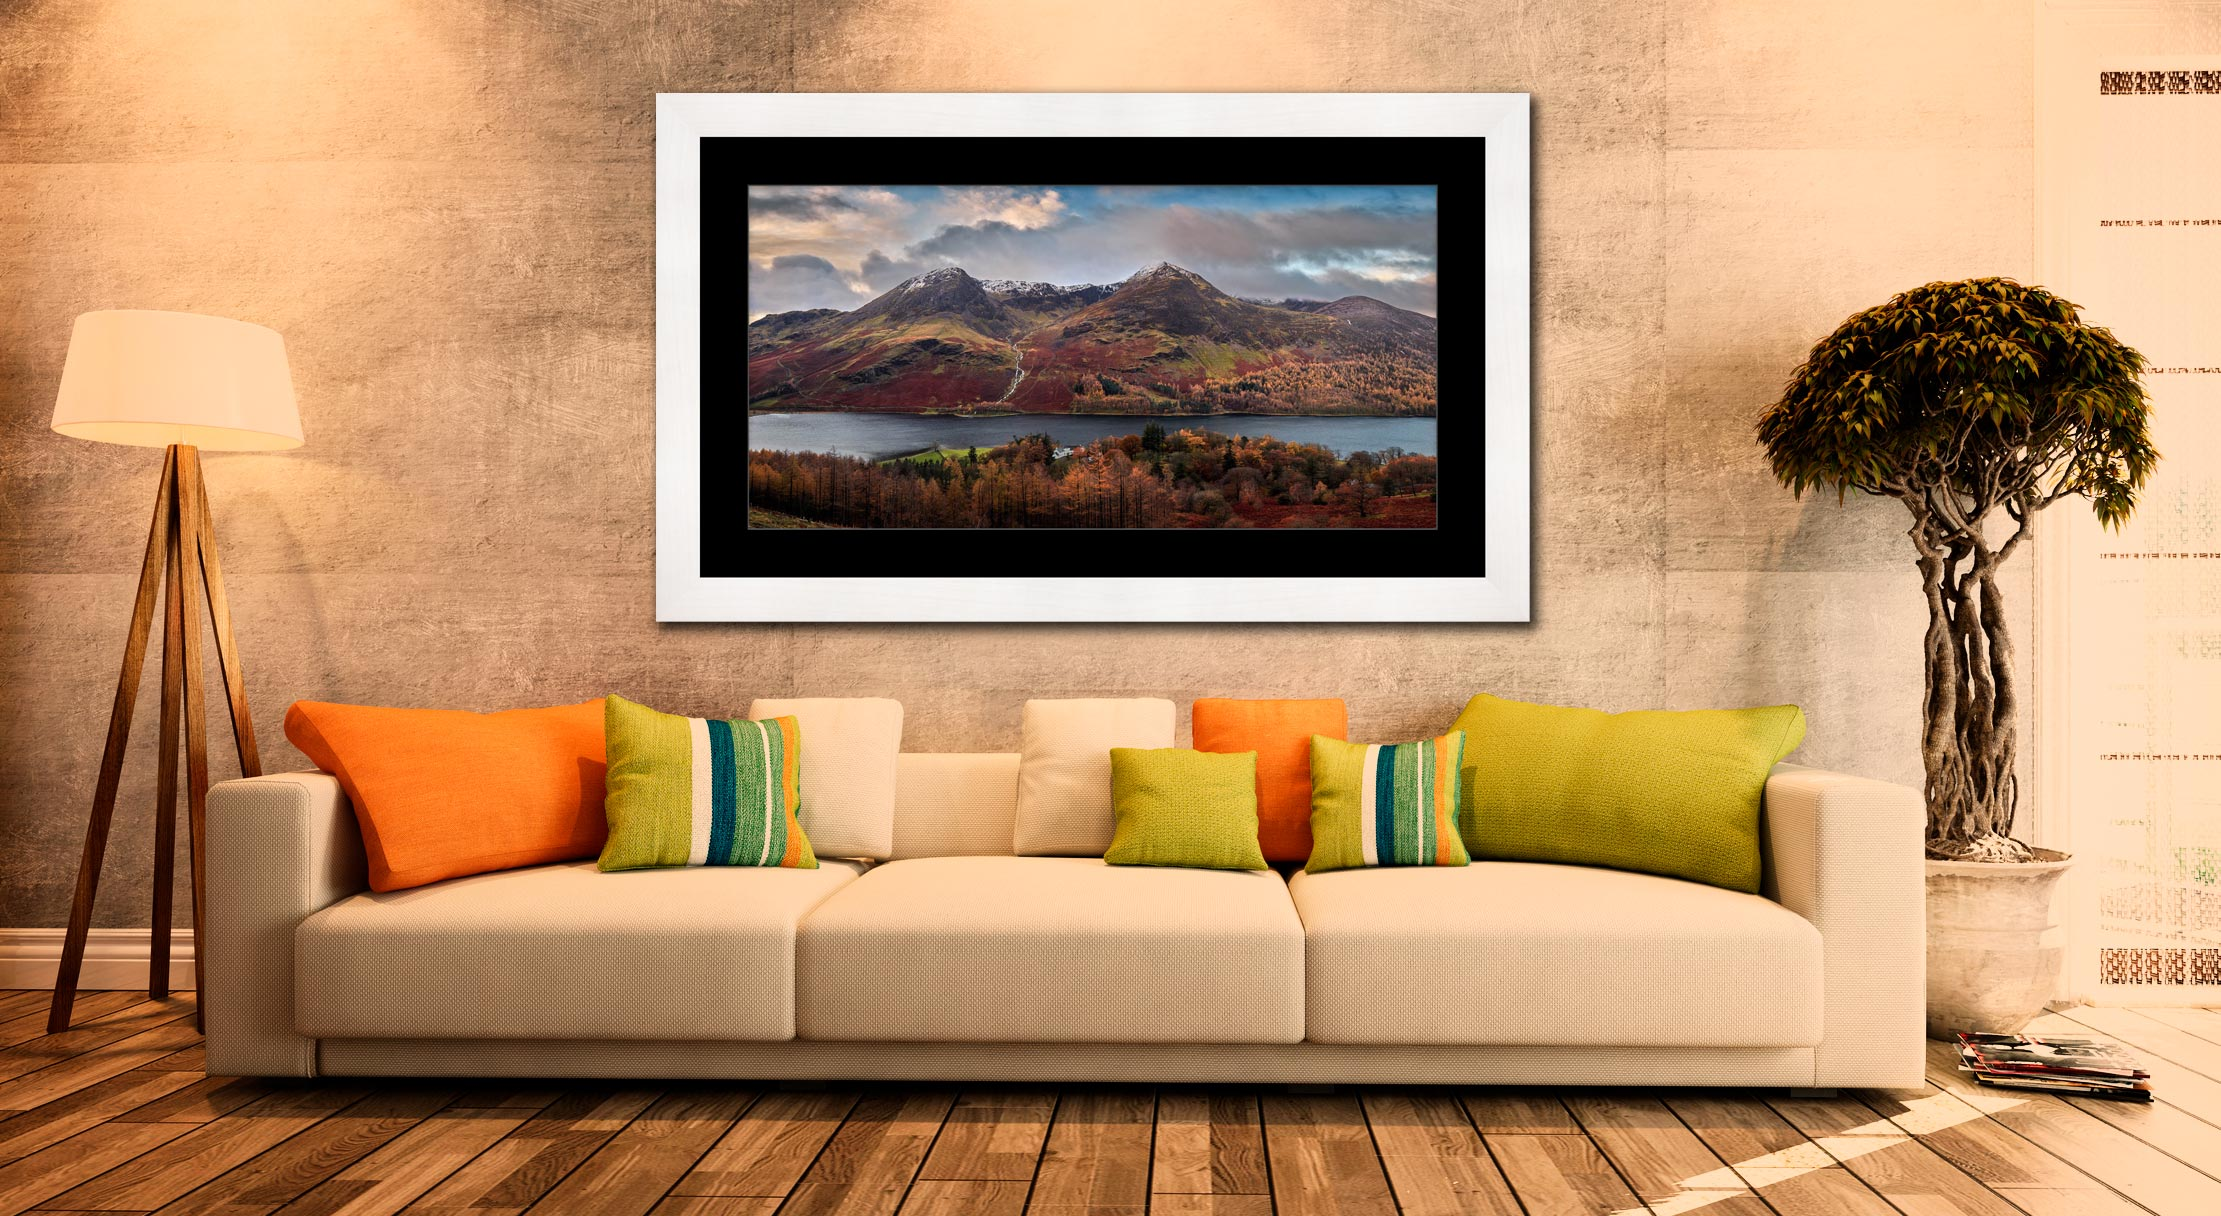 High Stile High Crag in Autumn - Framed Print with Mount on Wall